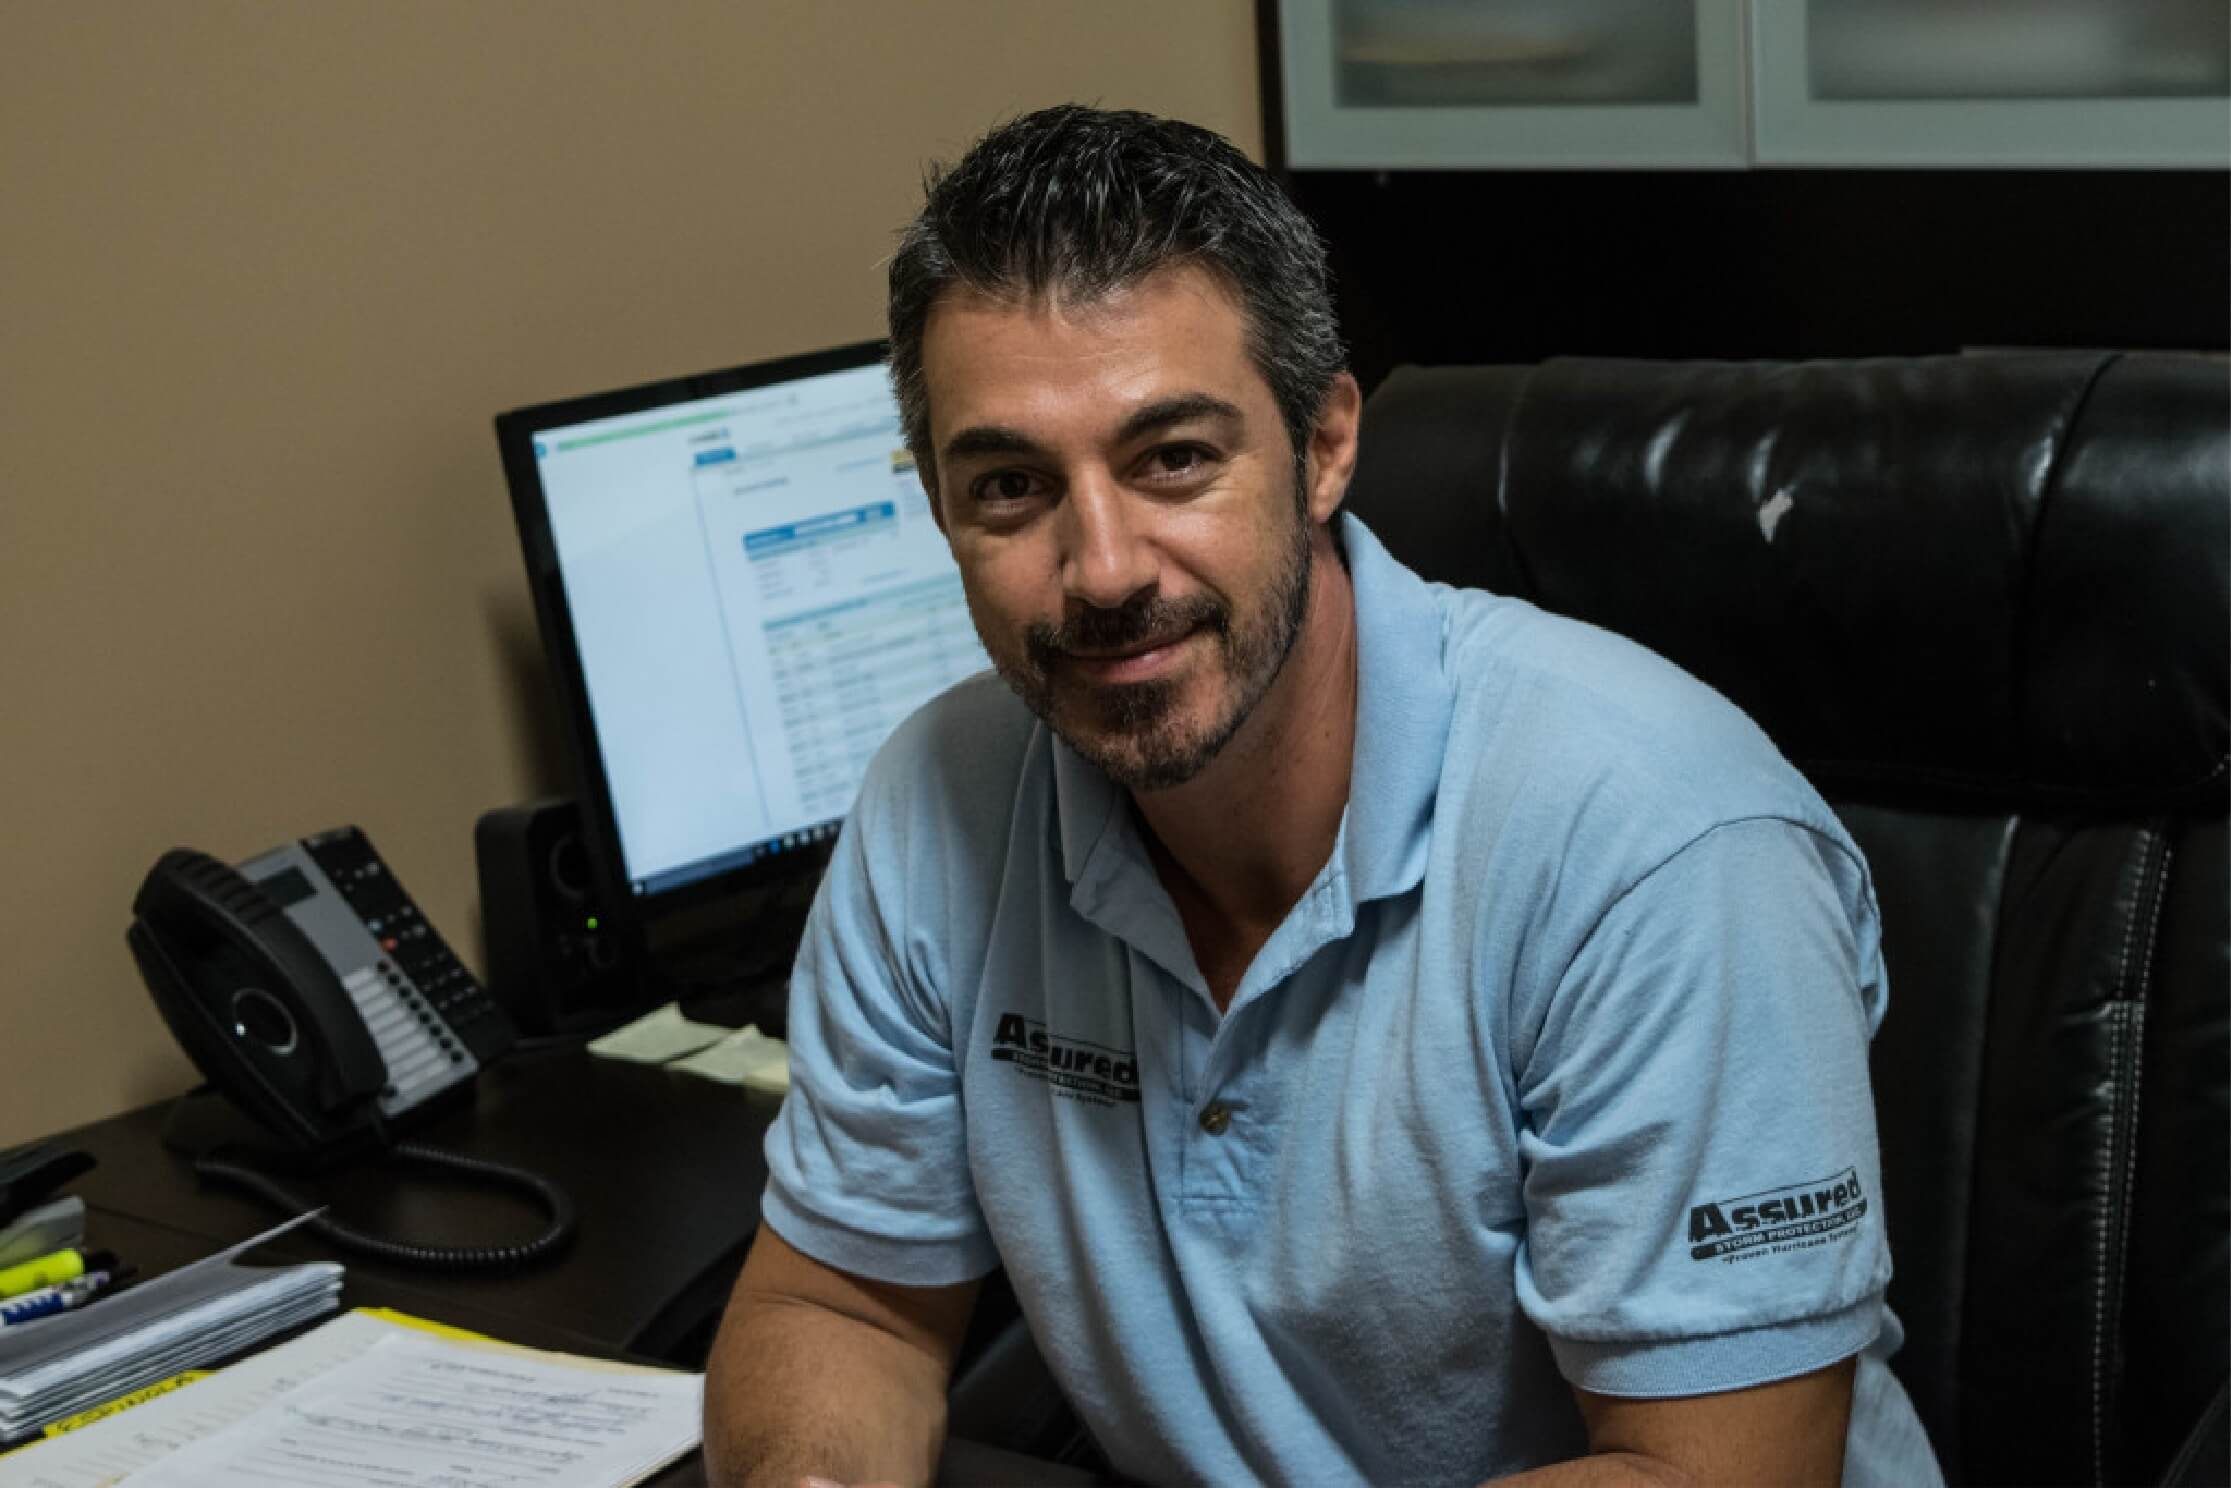 Massimo Foti, an owner of Assured Storm Protection